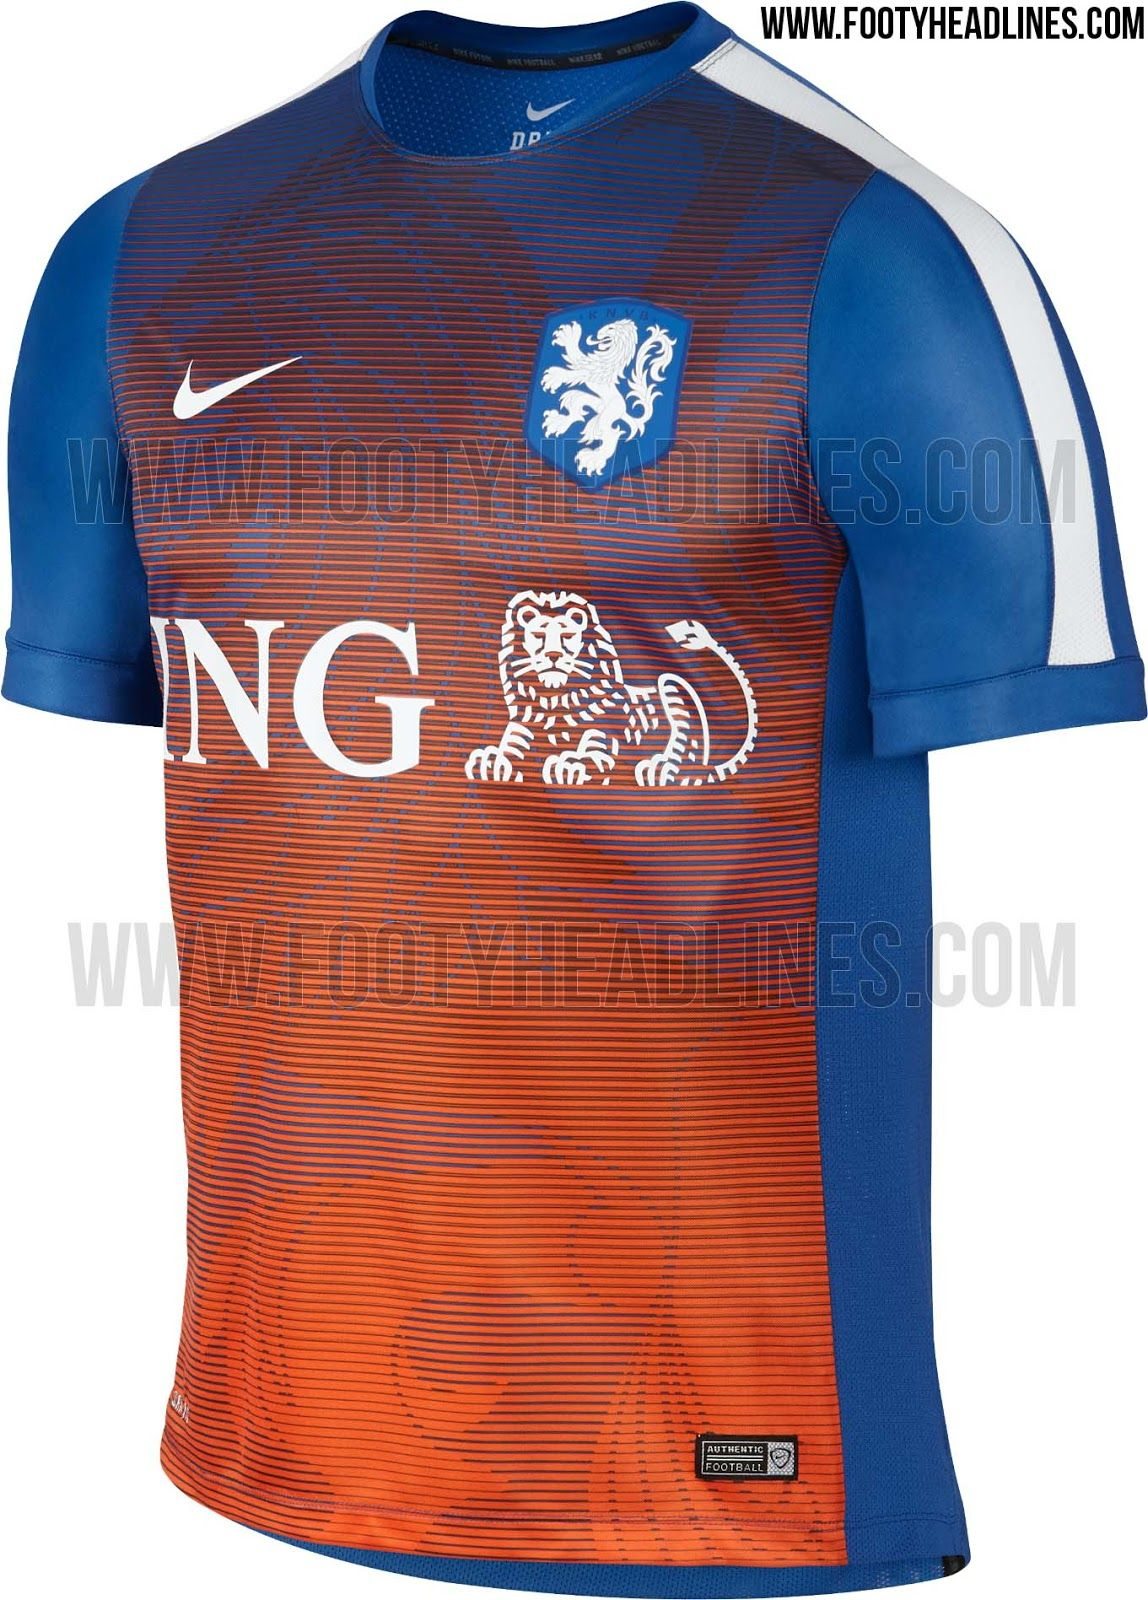 new product c9996 4a3c6 This is the new Netherlands 2015 Pre-Match Soccer Jersey. Sexy